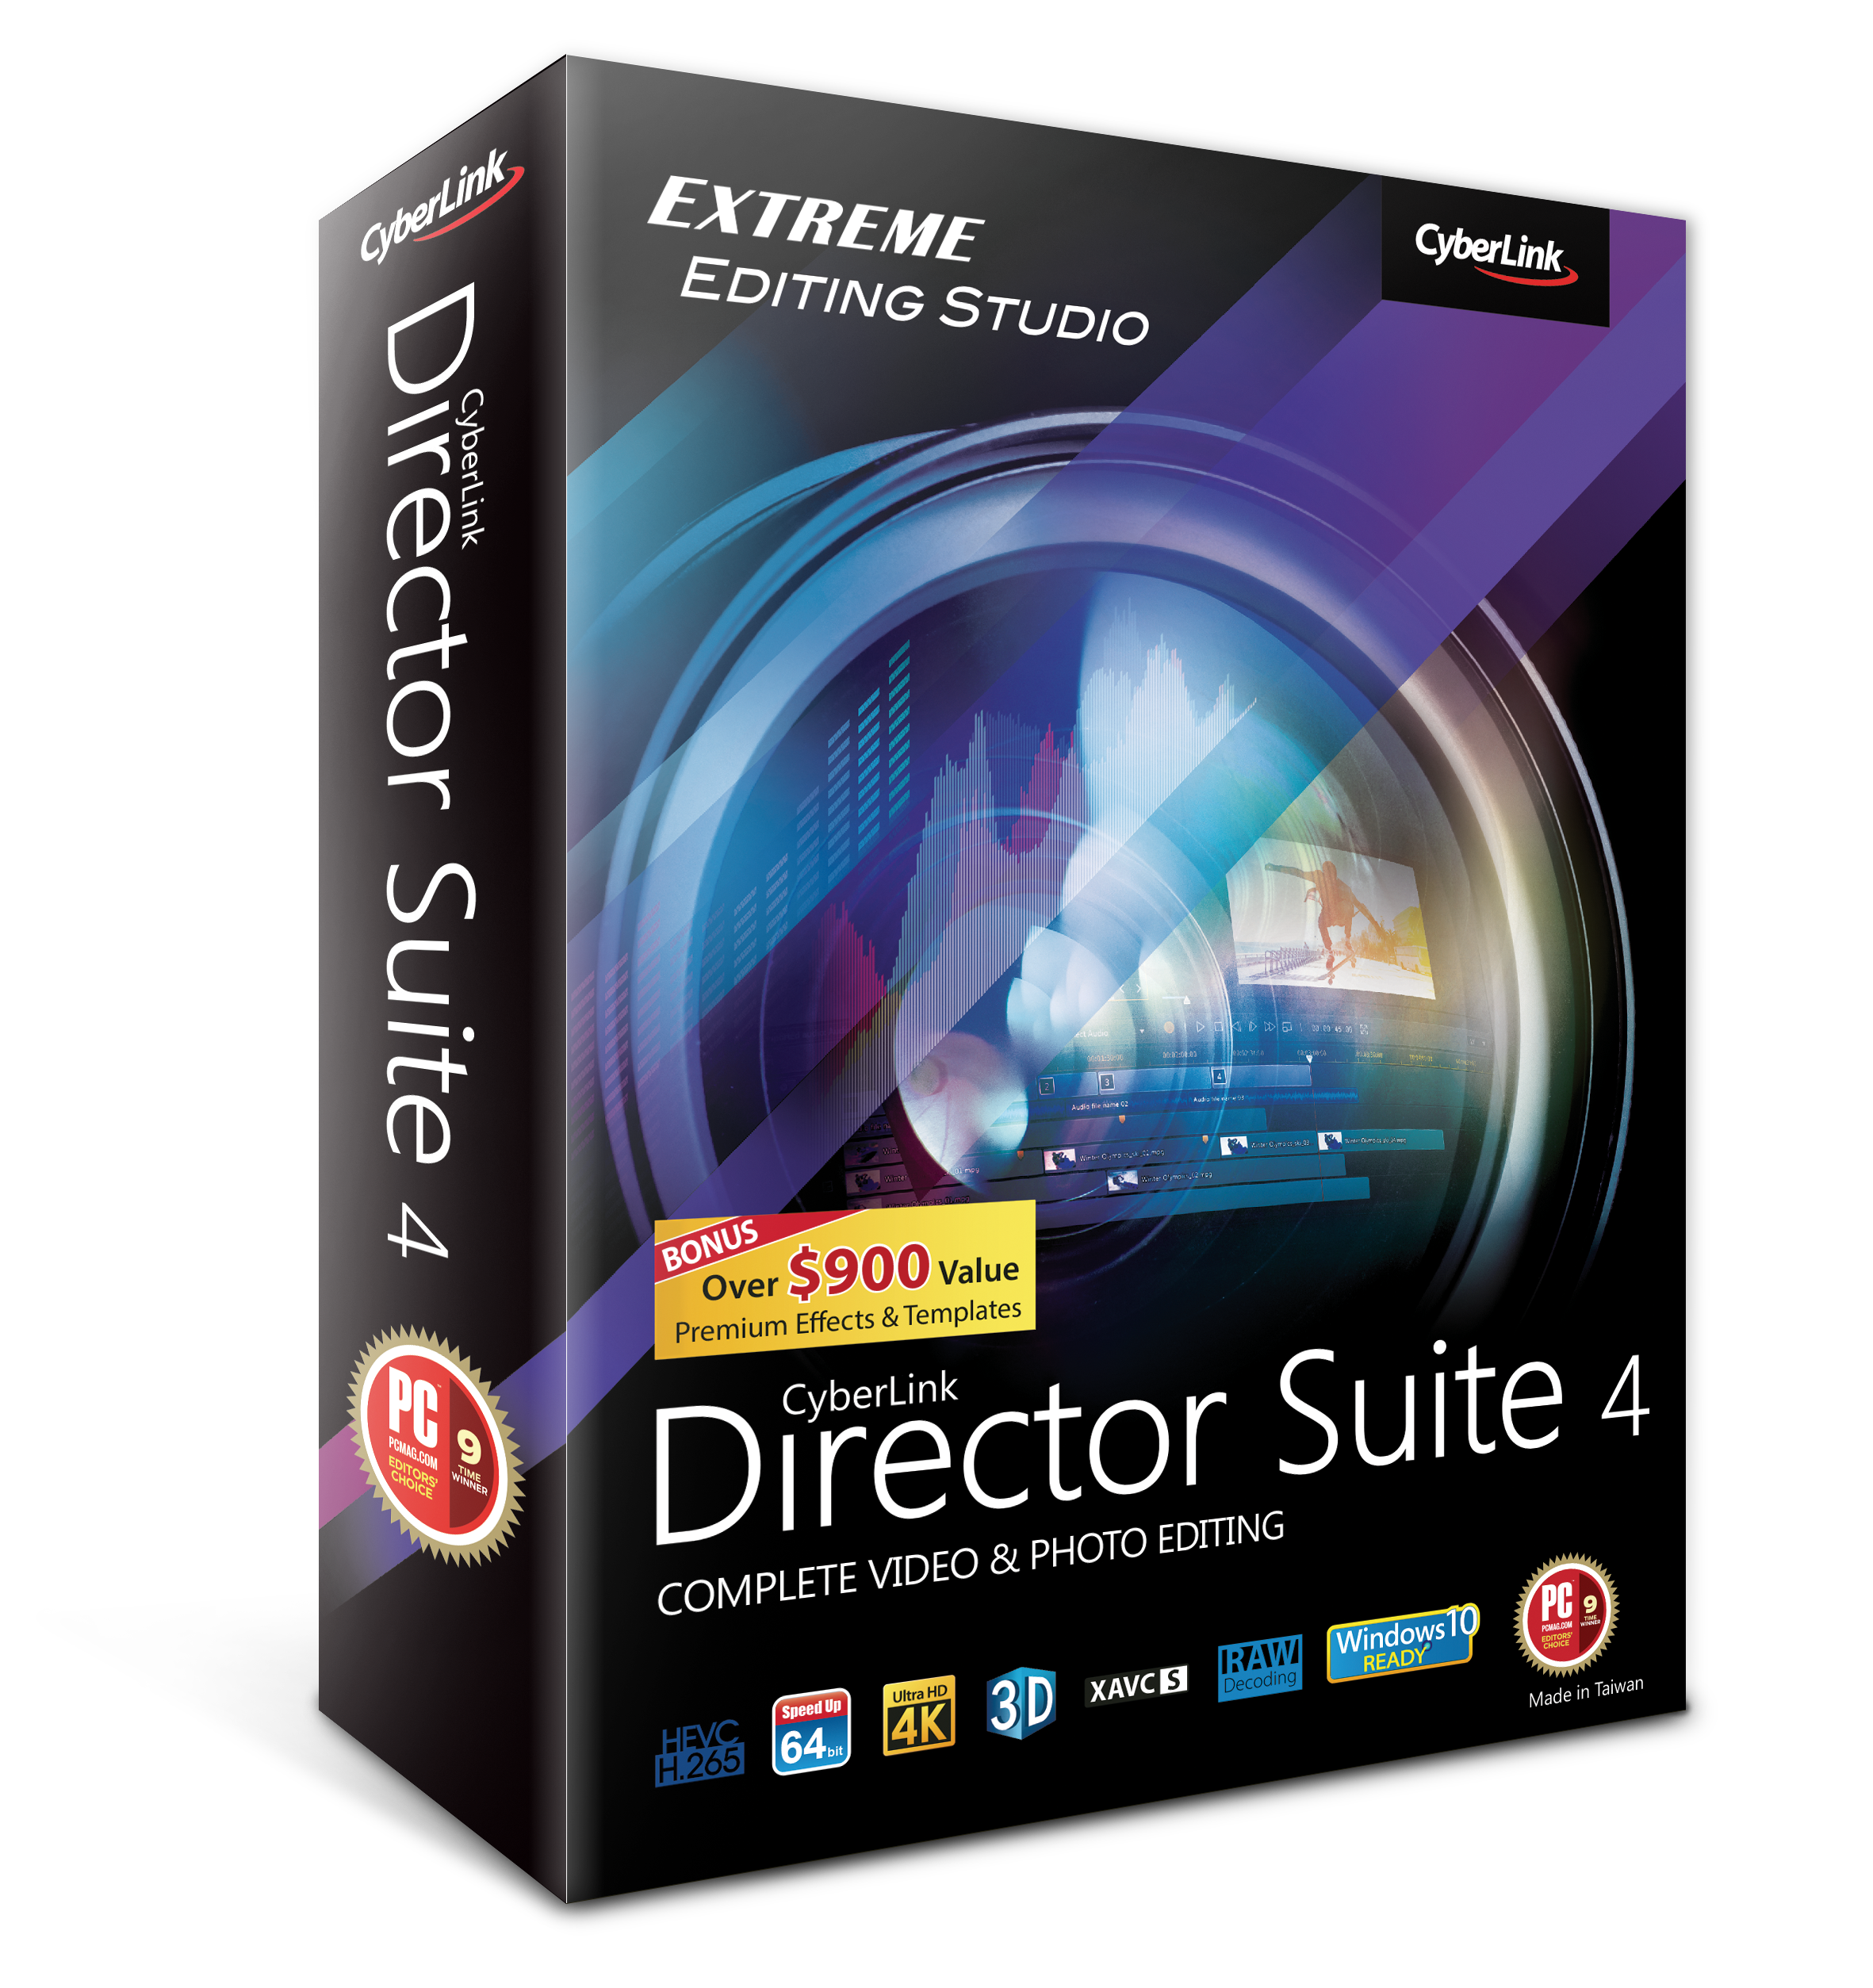 Upgrade to Director Suite 4 from v.2/3